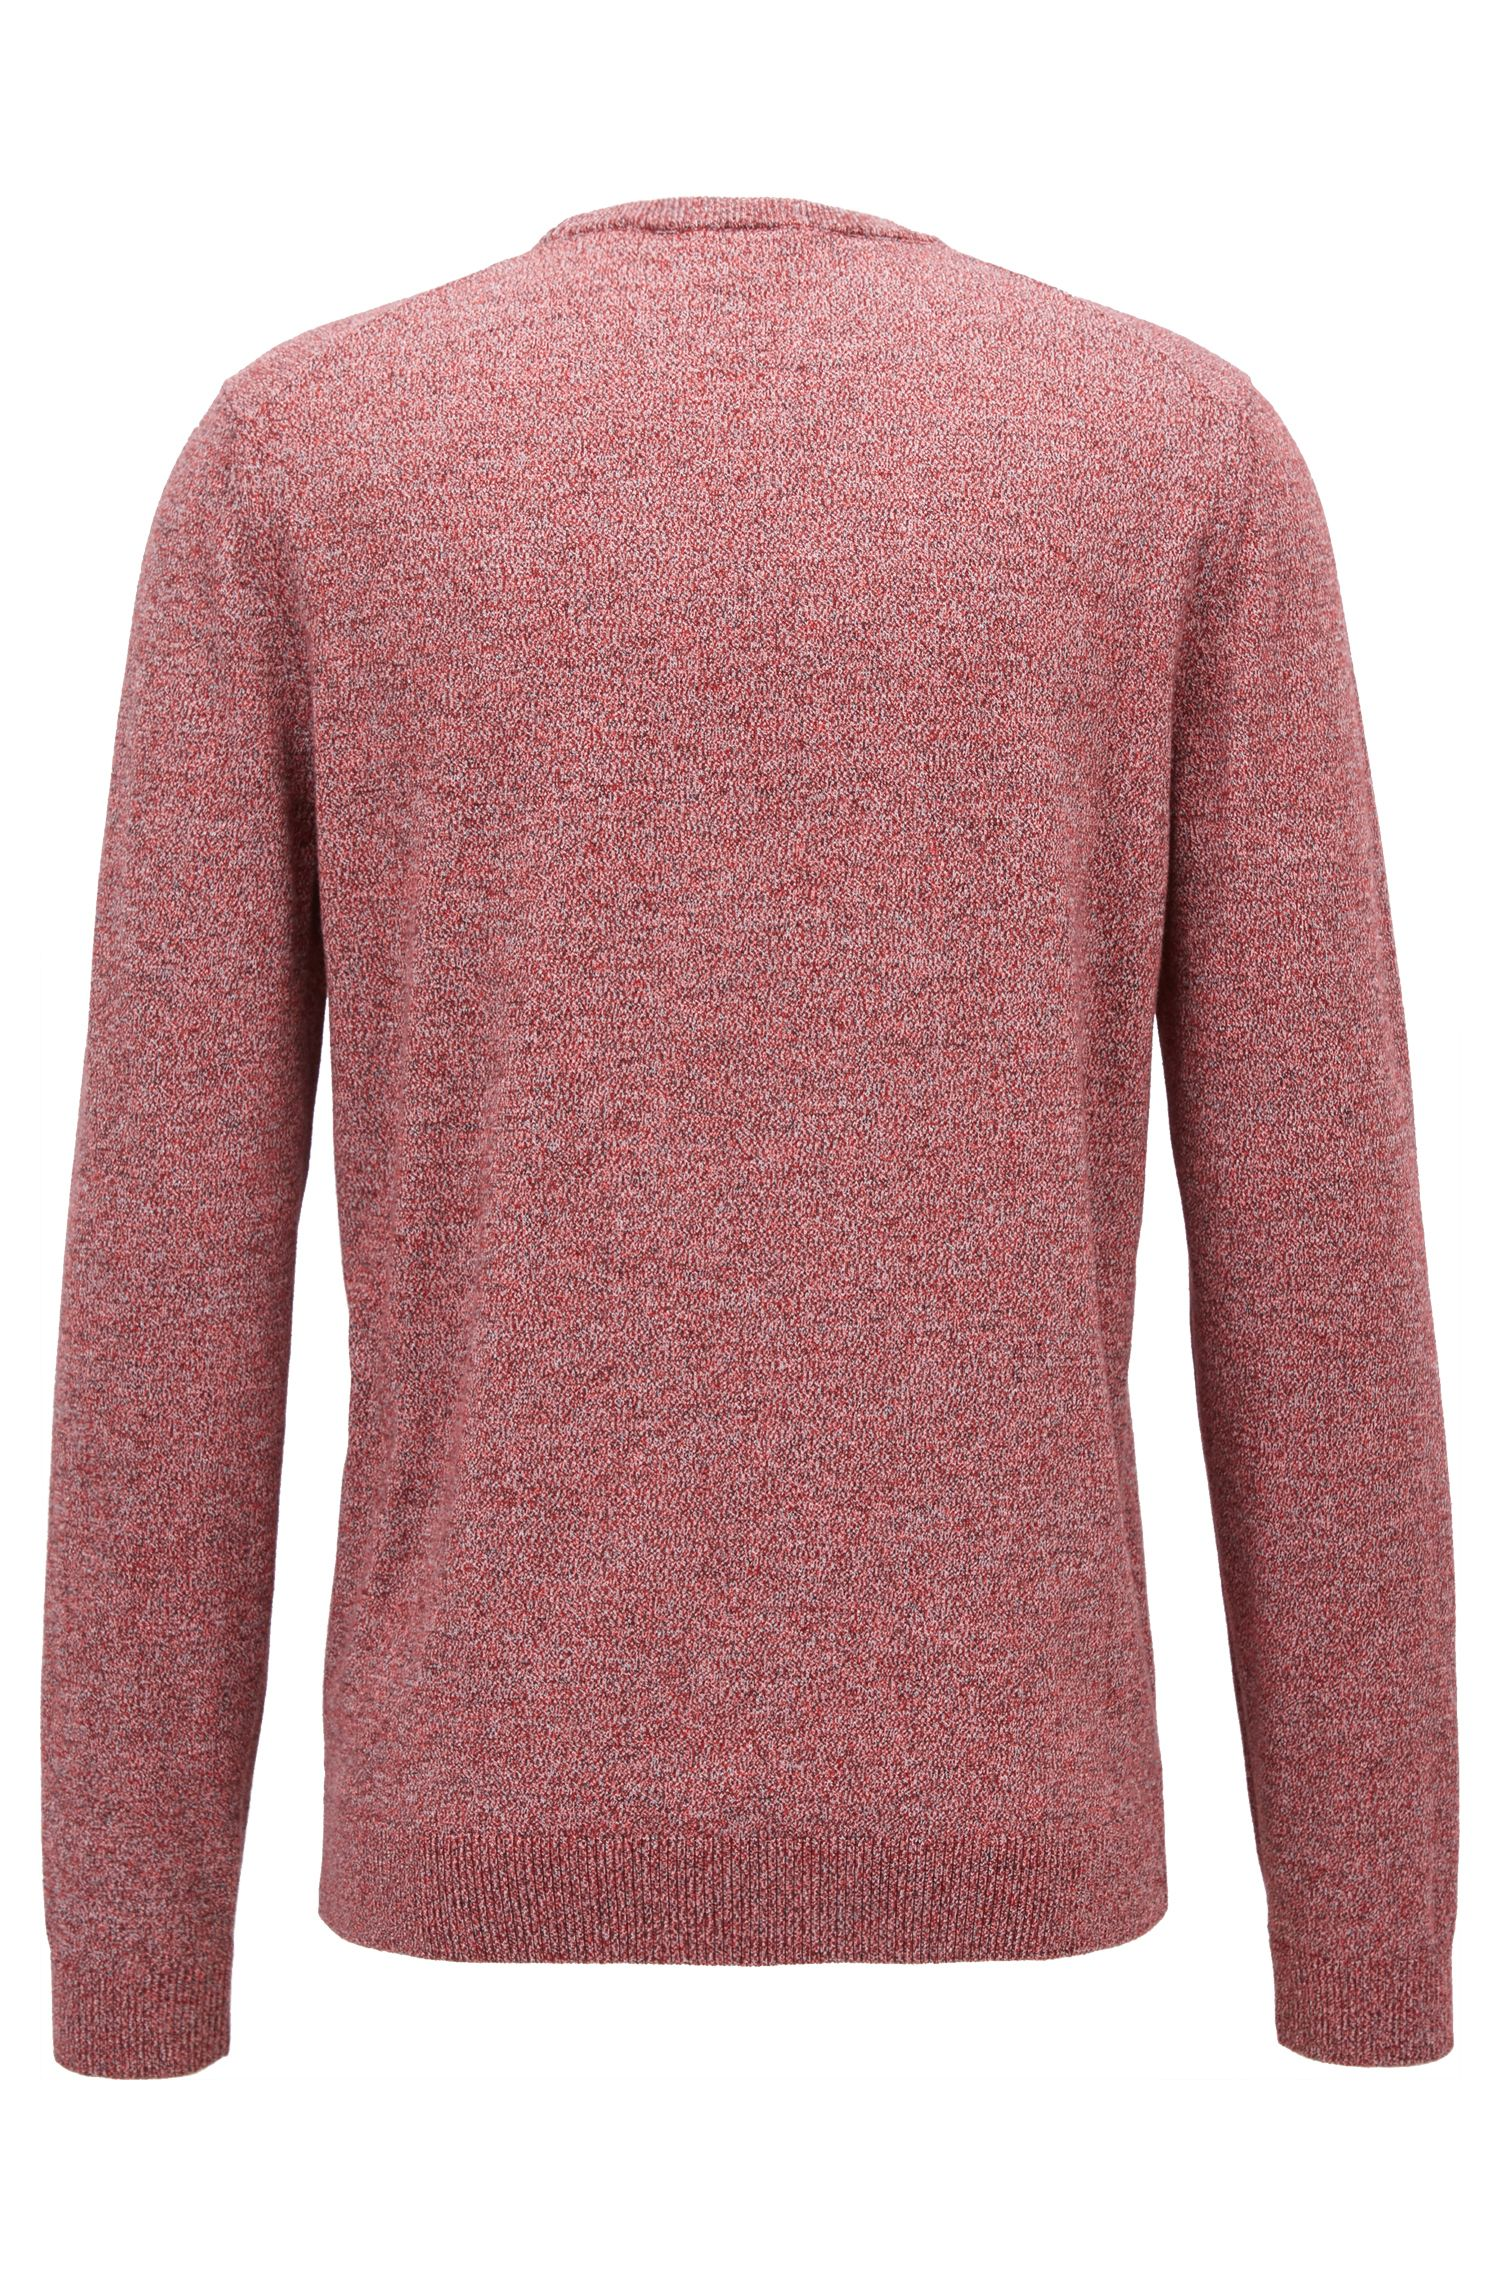 Cotton V-Neck Sweater | Fabbert D